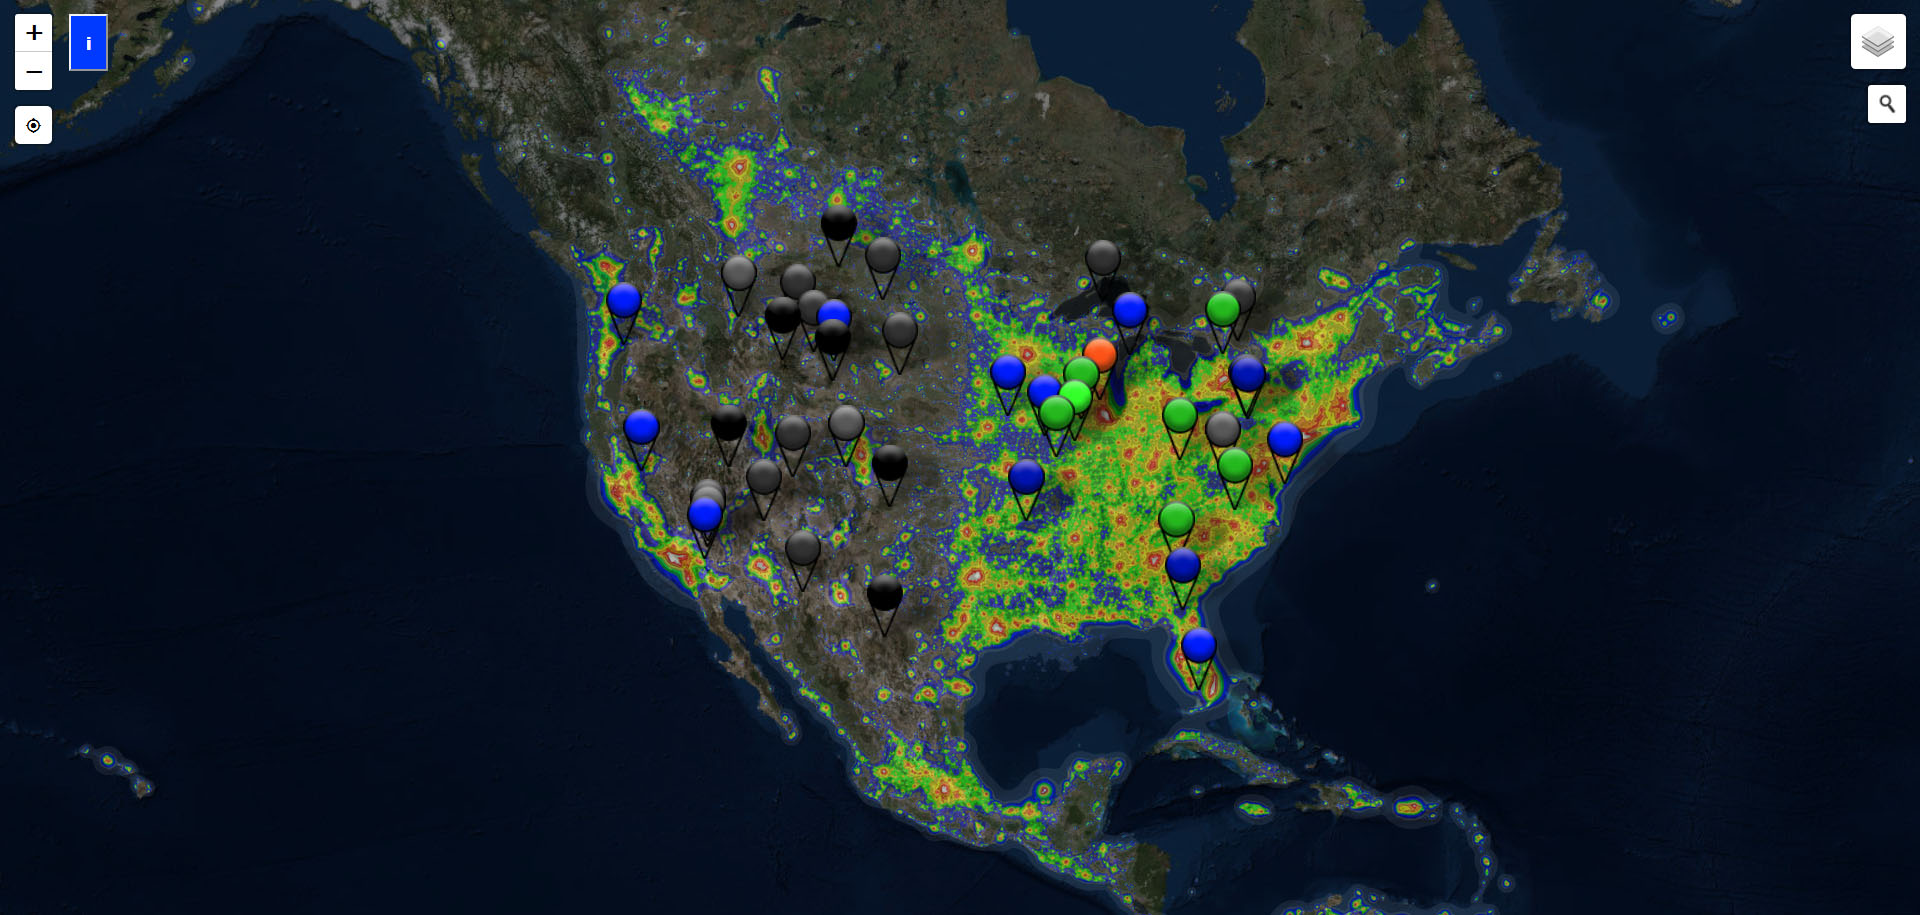 If you want to determine the best dark-sky areas near you, check out  DarkSkyFinder.com , which maps dark sky areas around the globe.